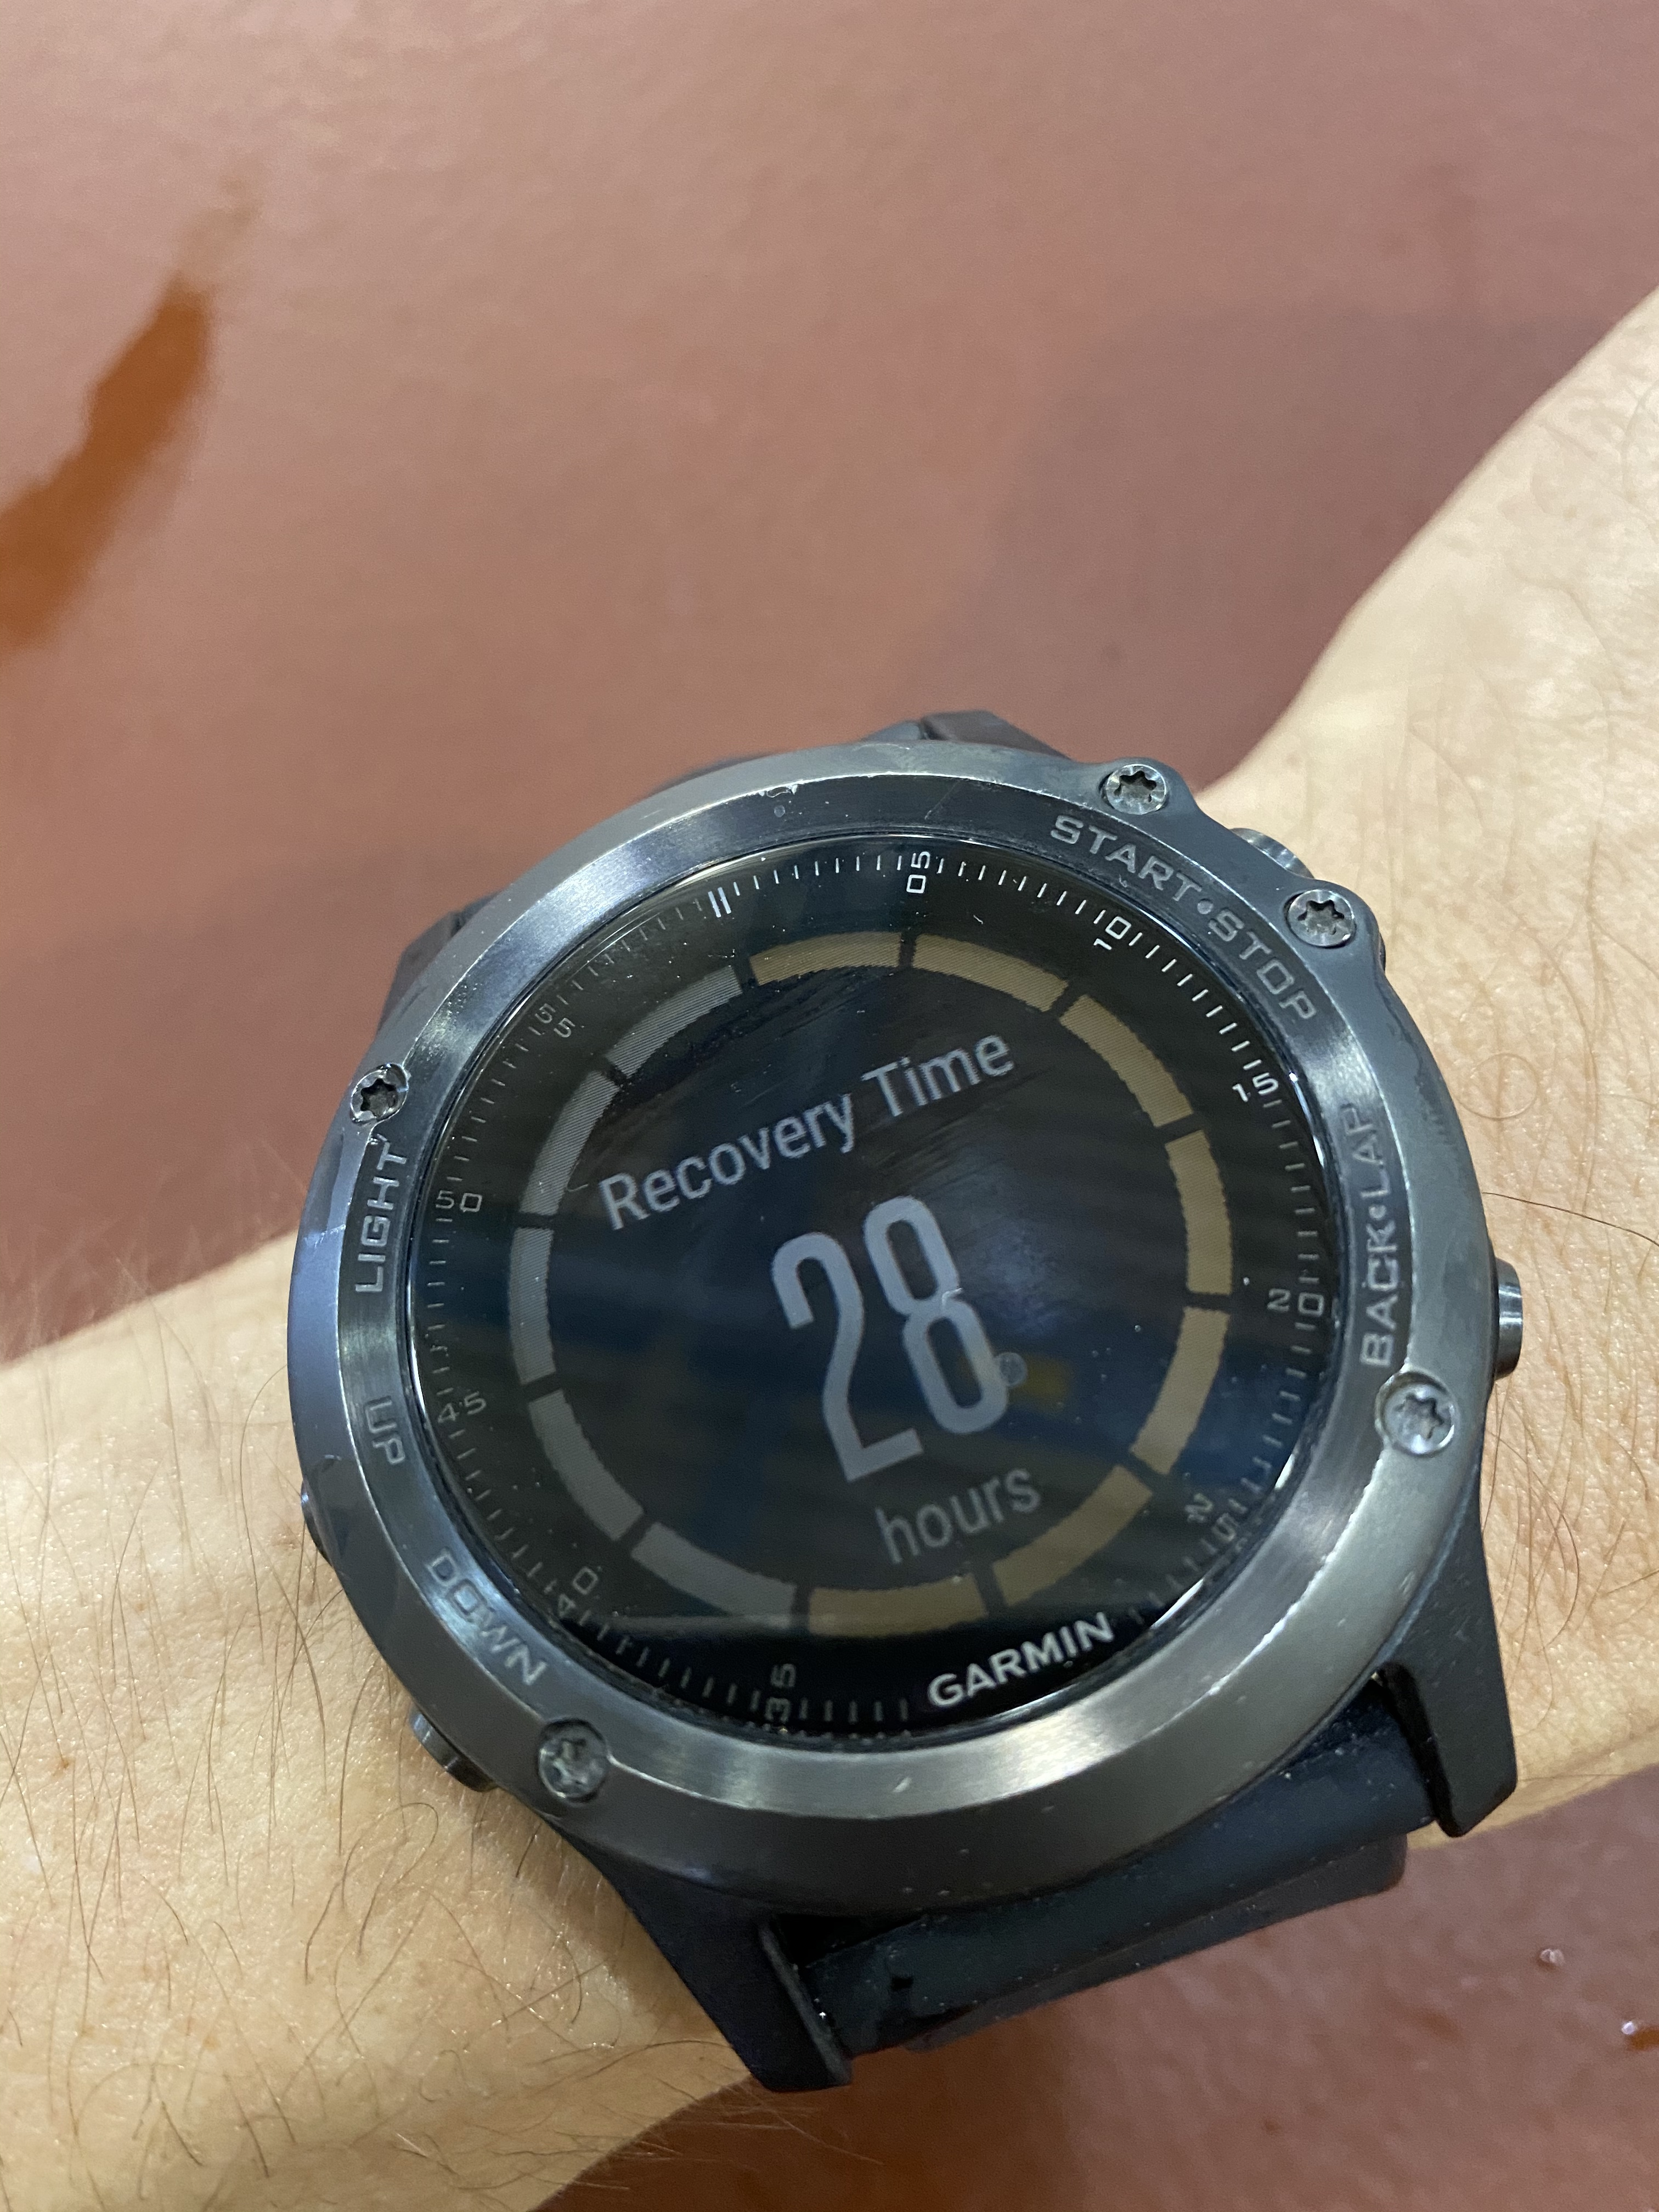 Garmin watch showing recovery time of 28 hours